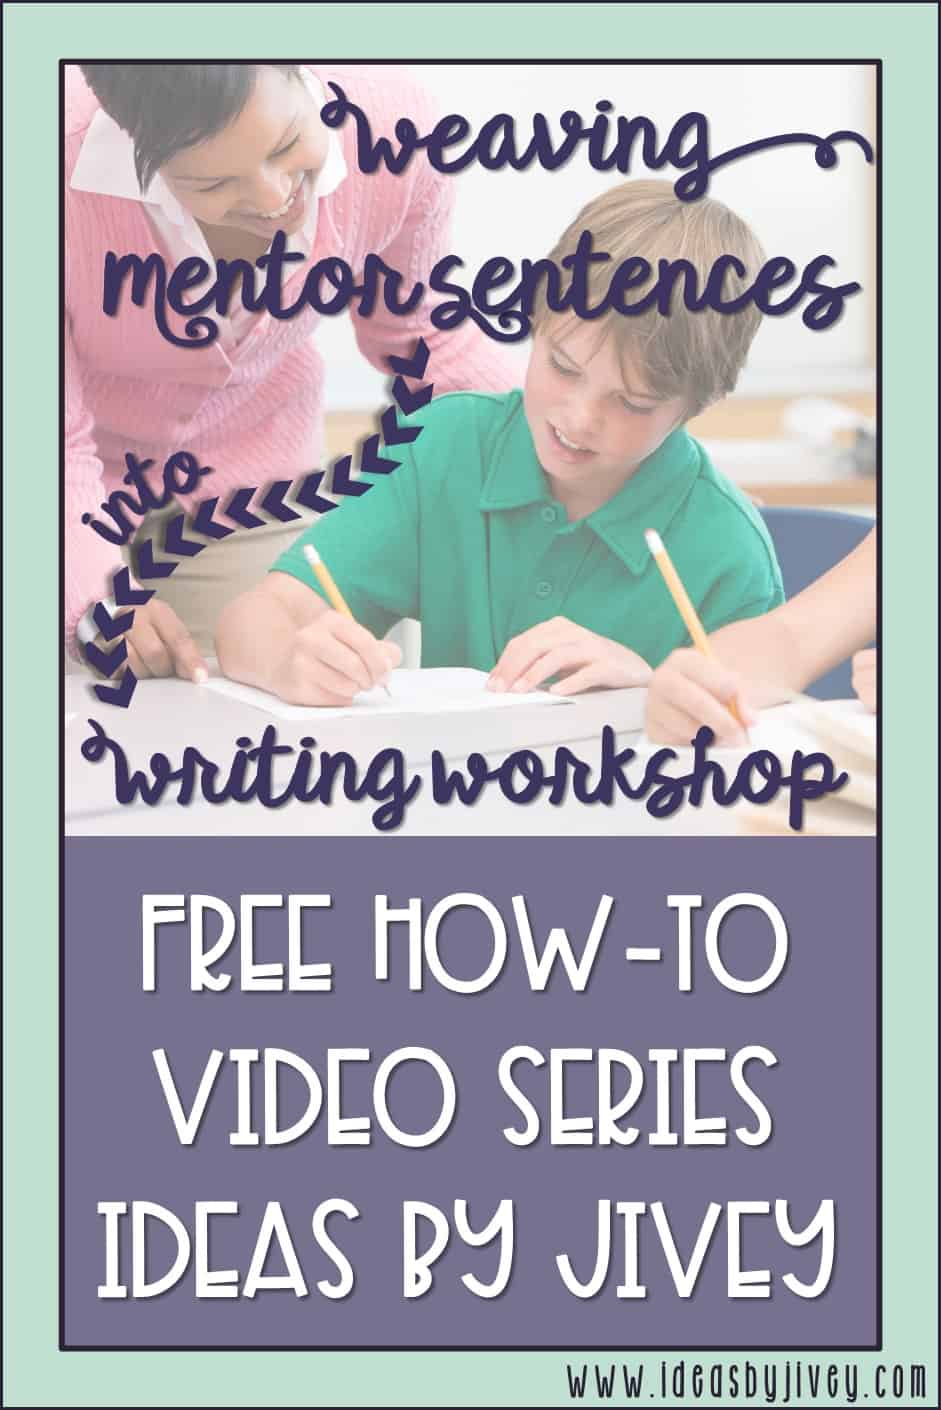 Check out this free video series where Jivey lays out how to make sure your mentor sentence lessons are being carried over into your students' writing!